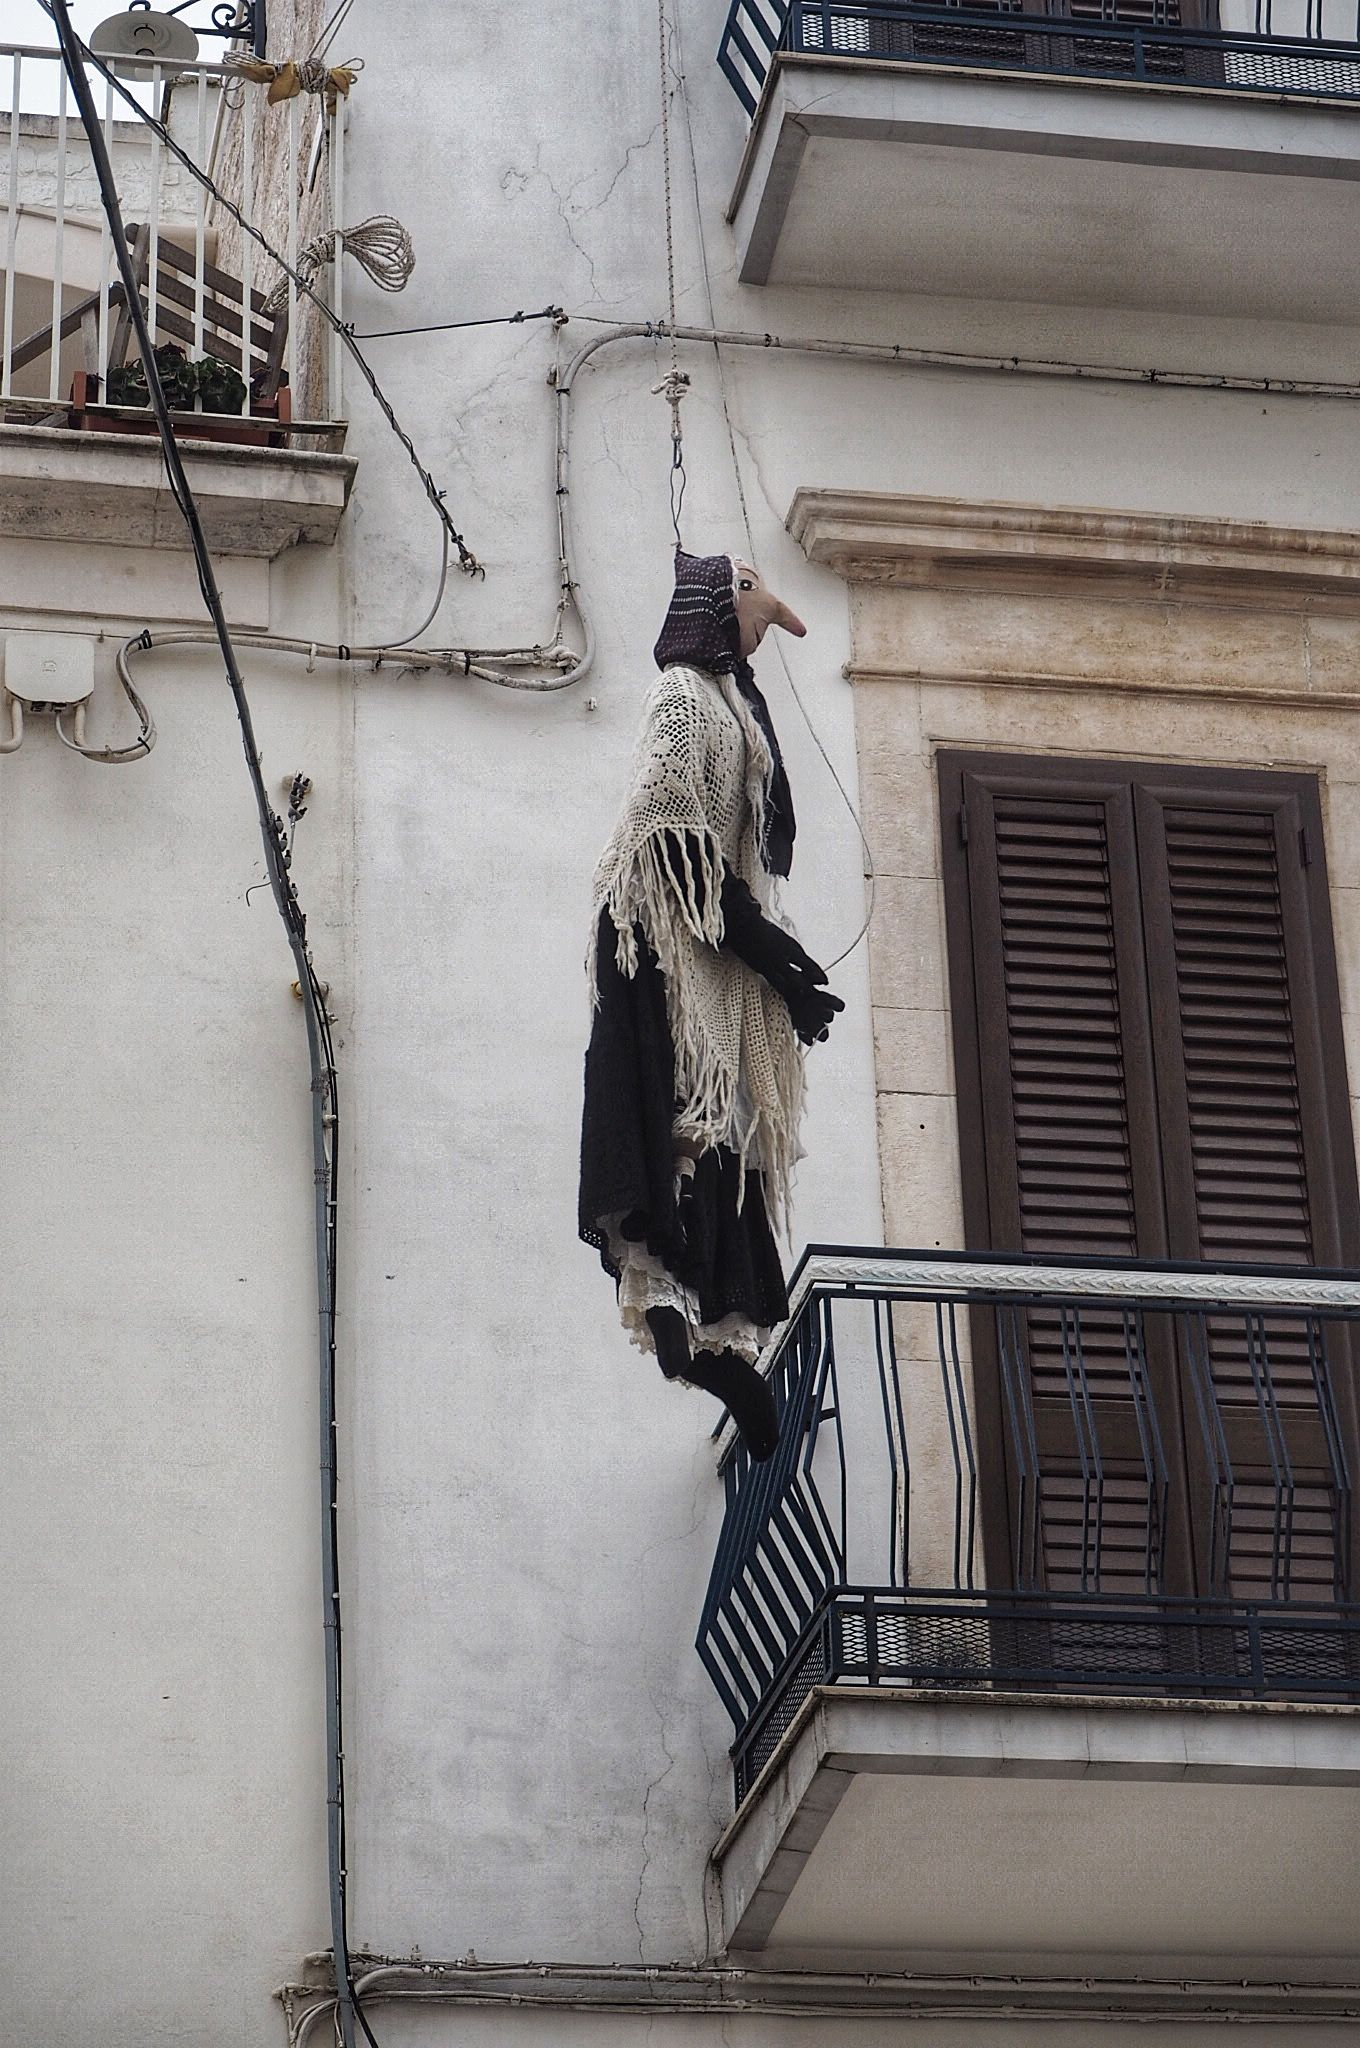 Locorotondo Quarandone lady puppets hanging from rope in the street